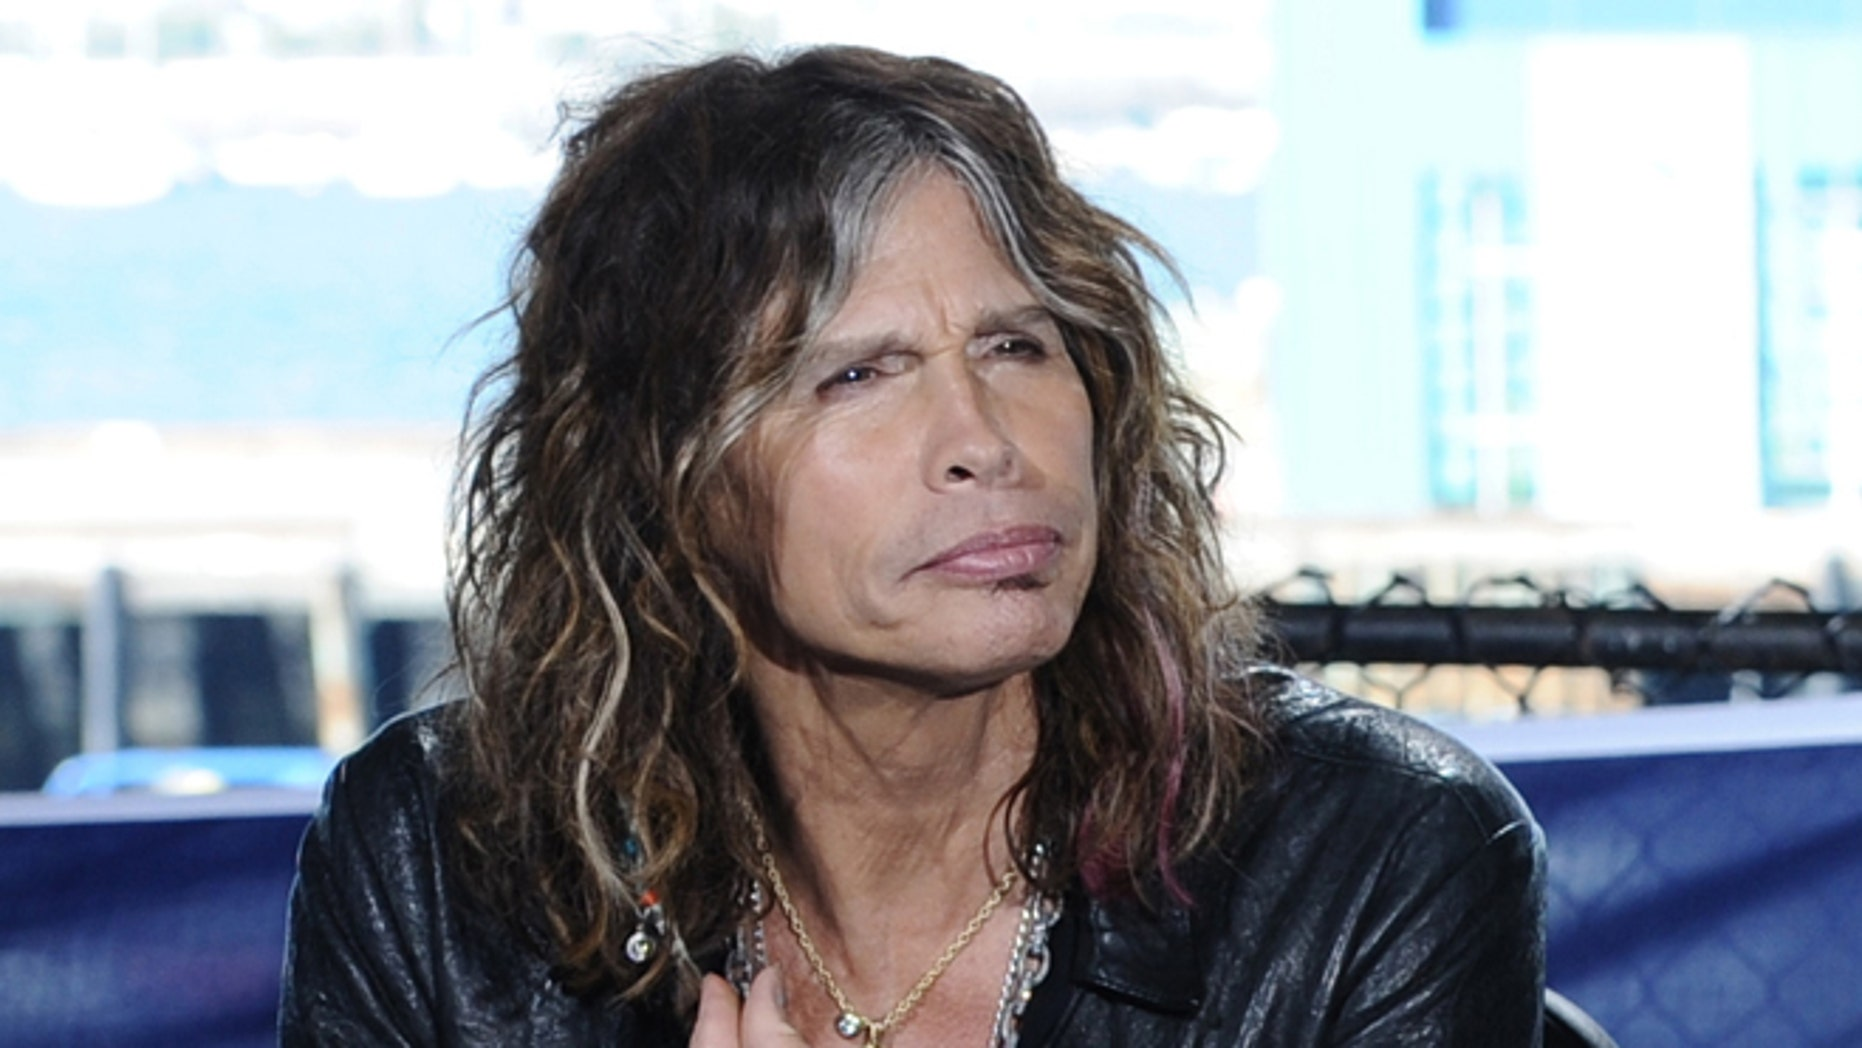 """Oct. 10, 2011: In this photo released by Fox shows """"American Idol"""" judge Steven Tyler during auditions for the singing competition series in San Diego."""